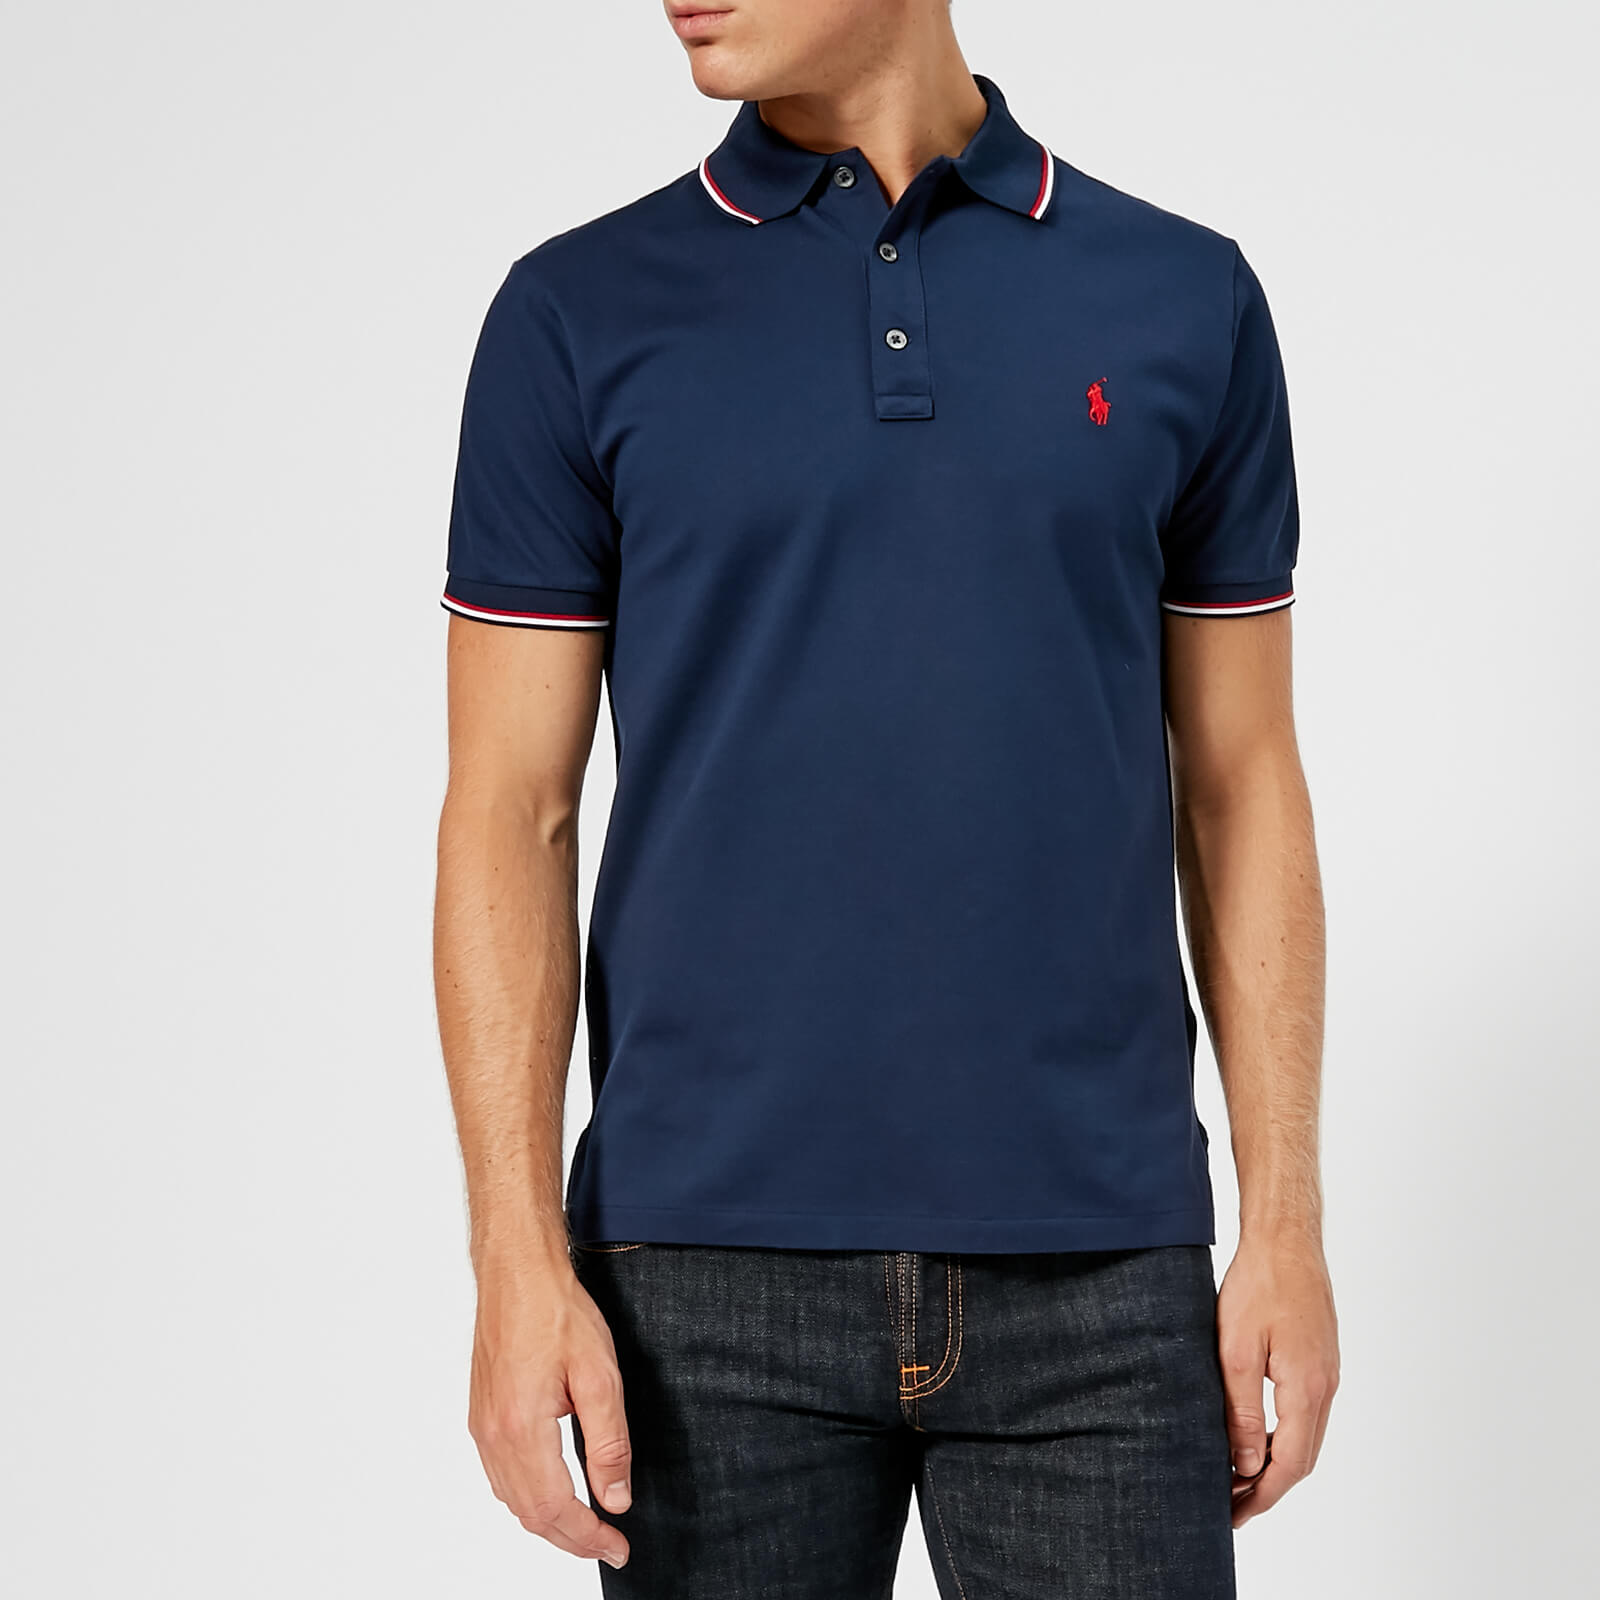 d5b81460f3d Polo Ralph Lauren Men s Custom Slim Fit Mesh Polo Shirt - Cruise Navy -  Free UK Delivery over £50